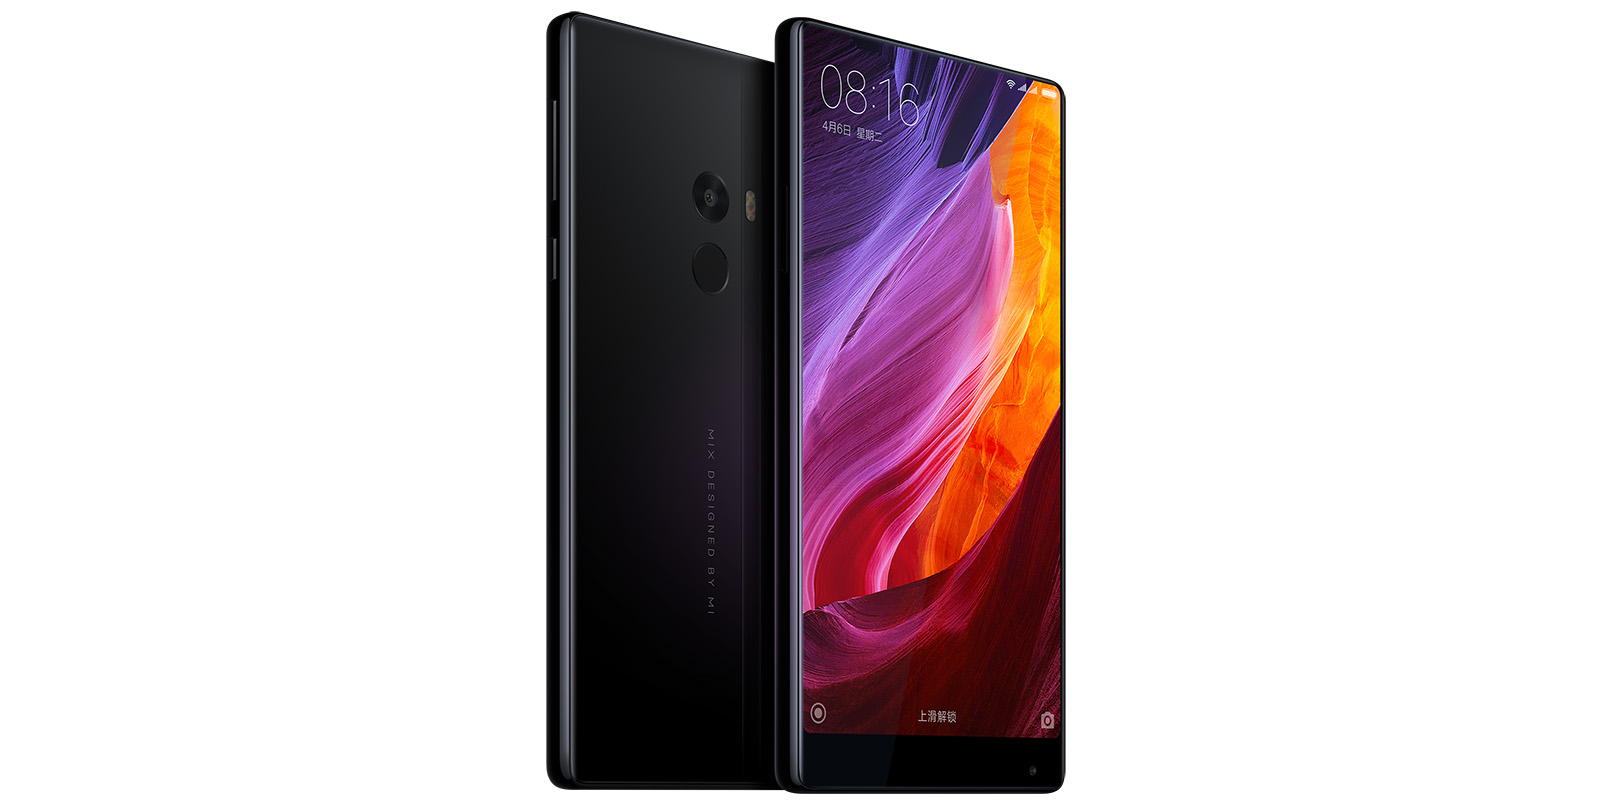 Xiaomi's edgeless Mi Mix is possibly the best-looking smartphone of 2016